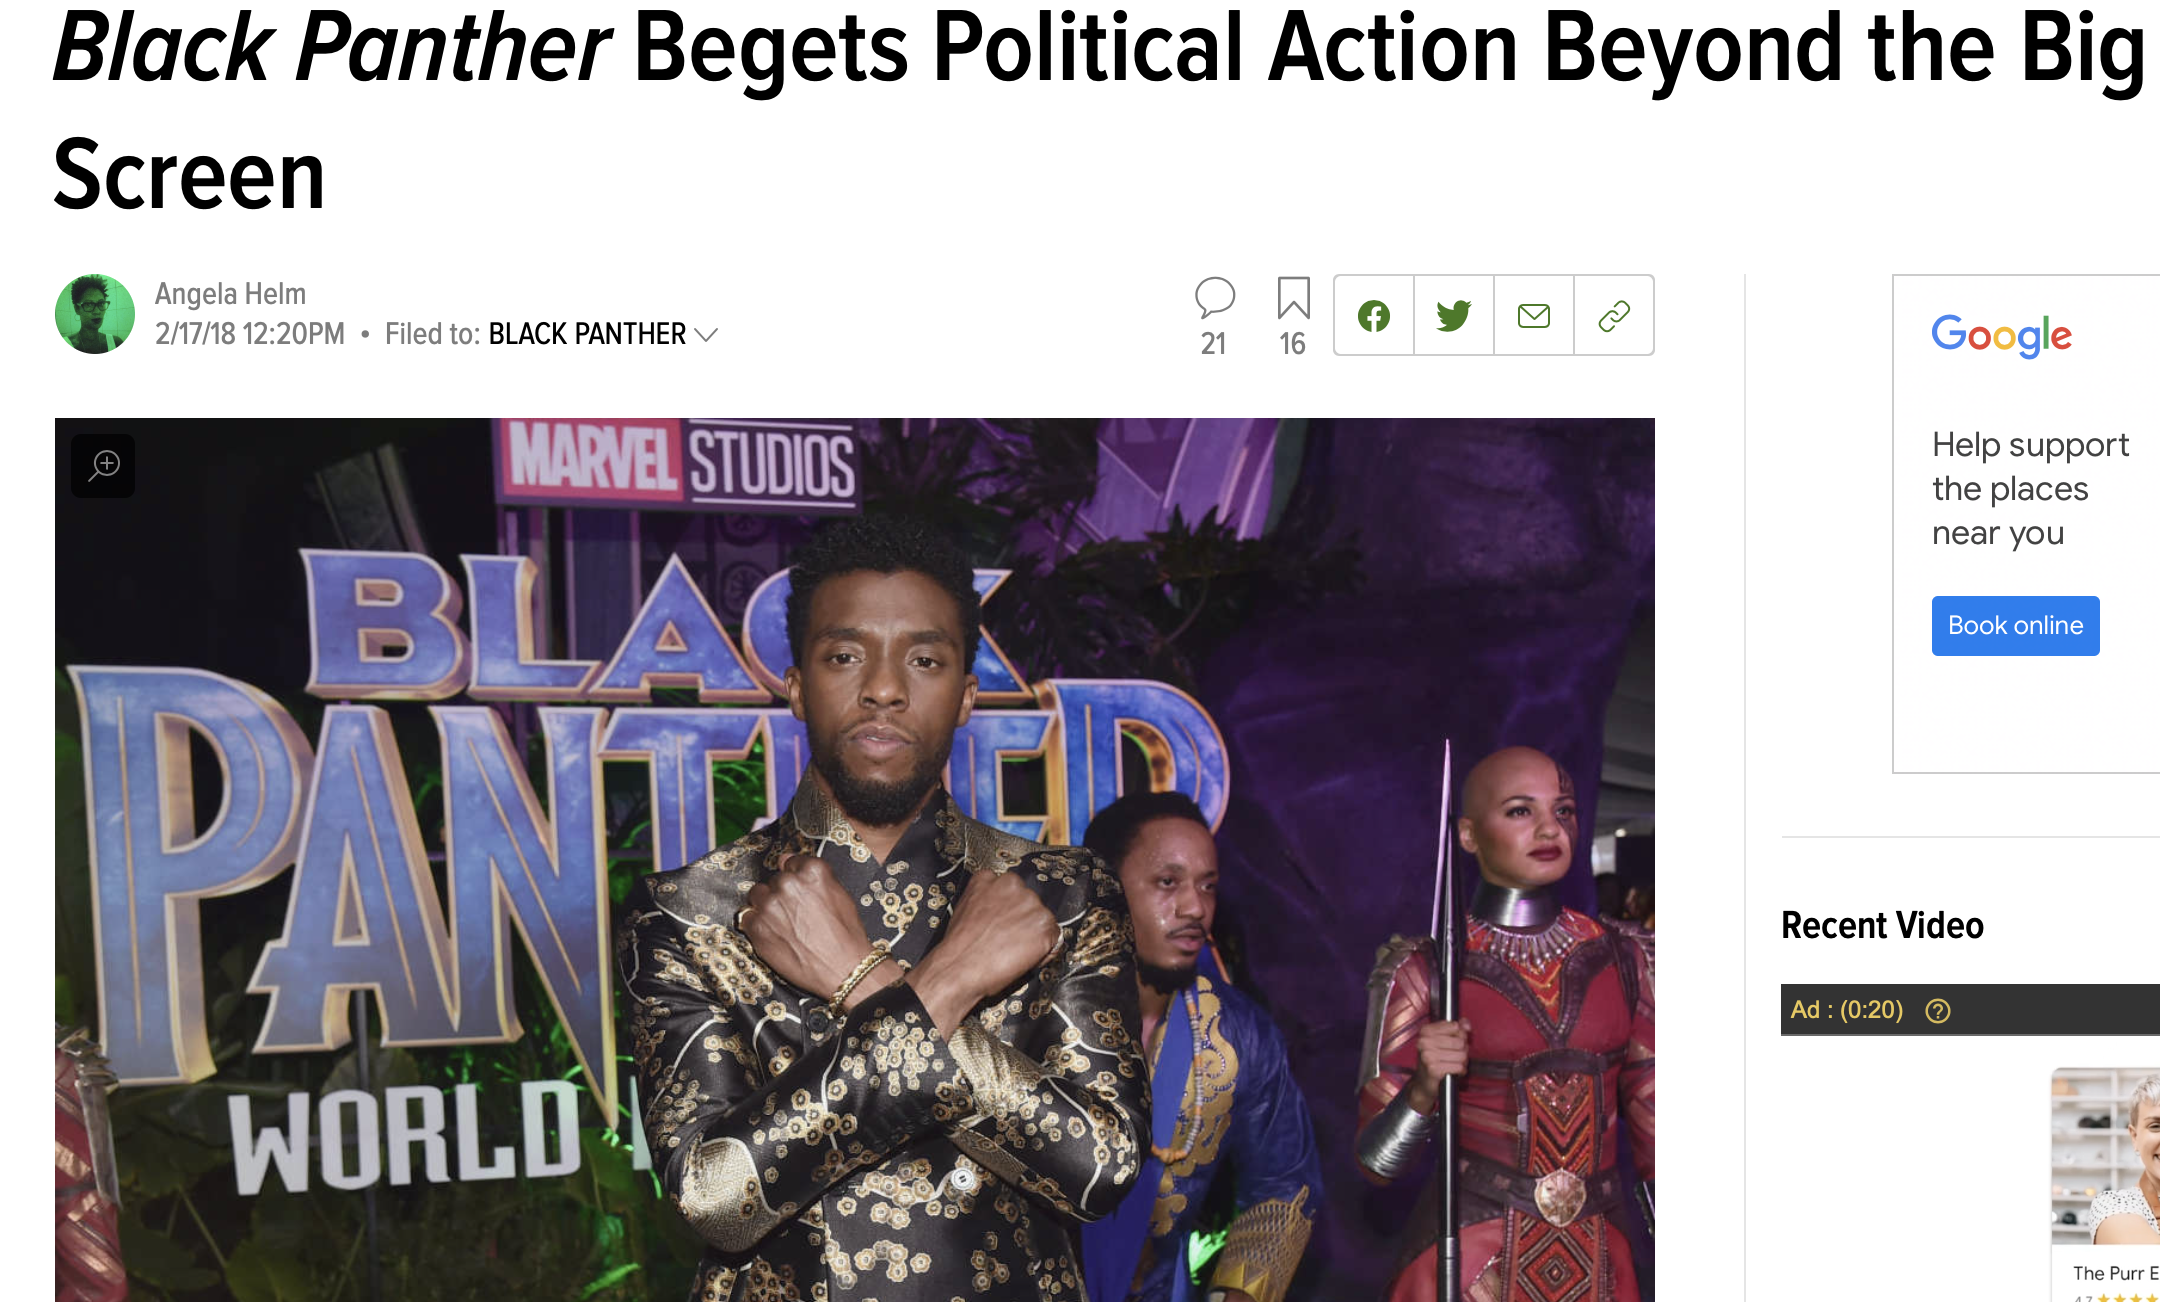 Black Panther Begets Political Action Beyond the Big Screen